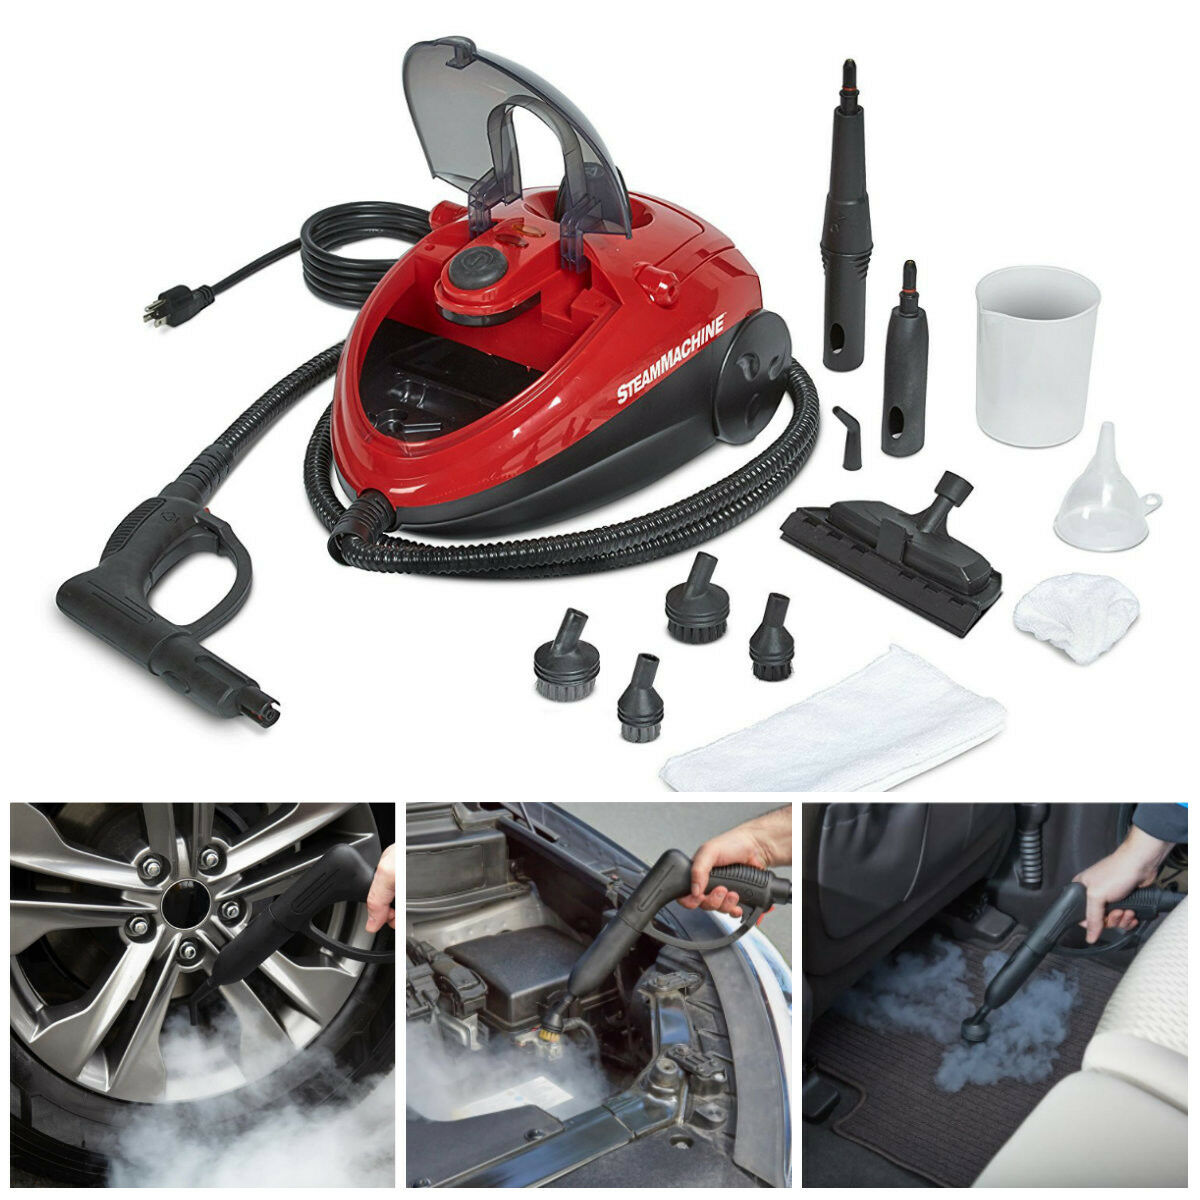 Steam Cleaner Machine Portable Car Care Upholstery Carpet Floor Handheld Steamer Ebay